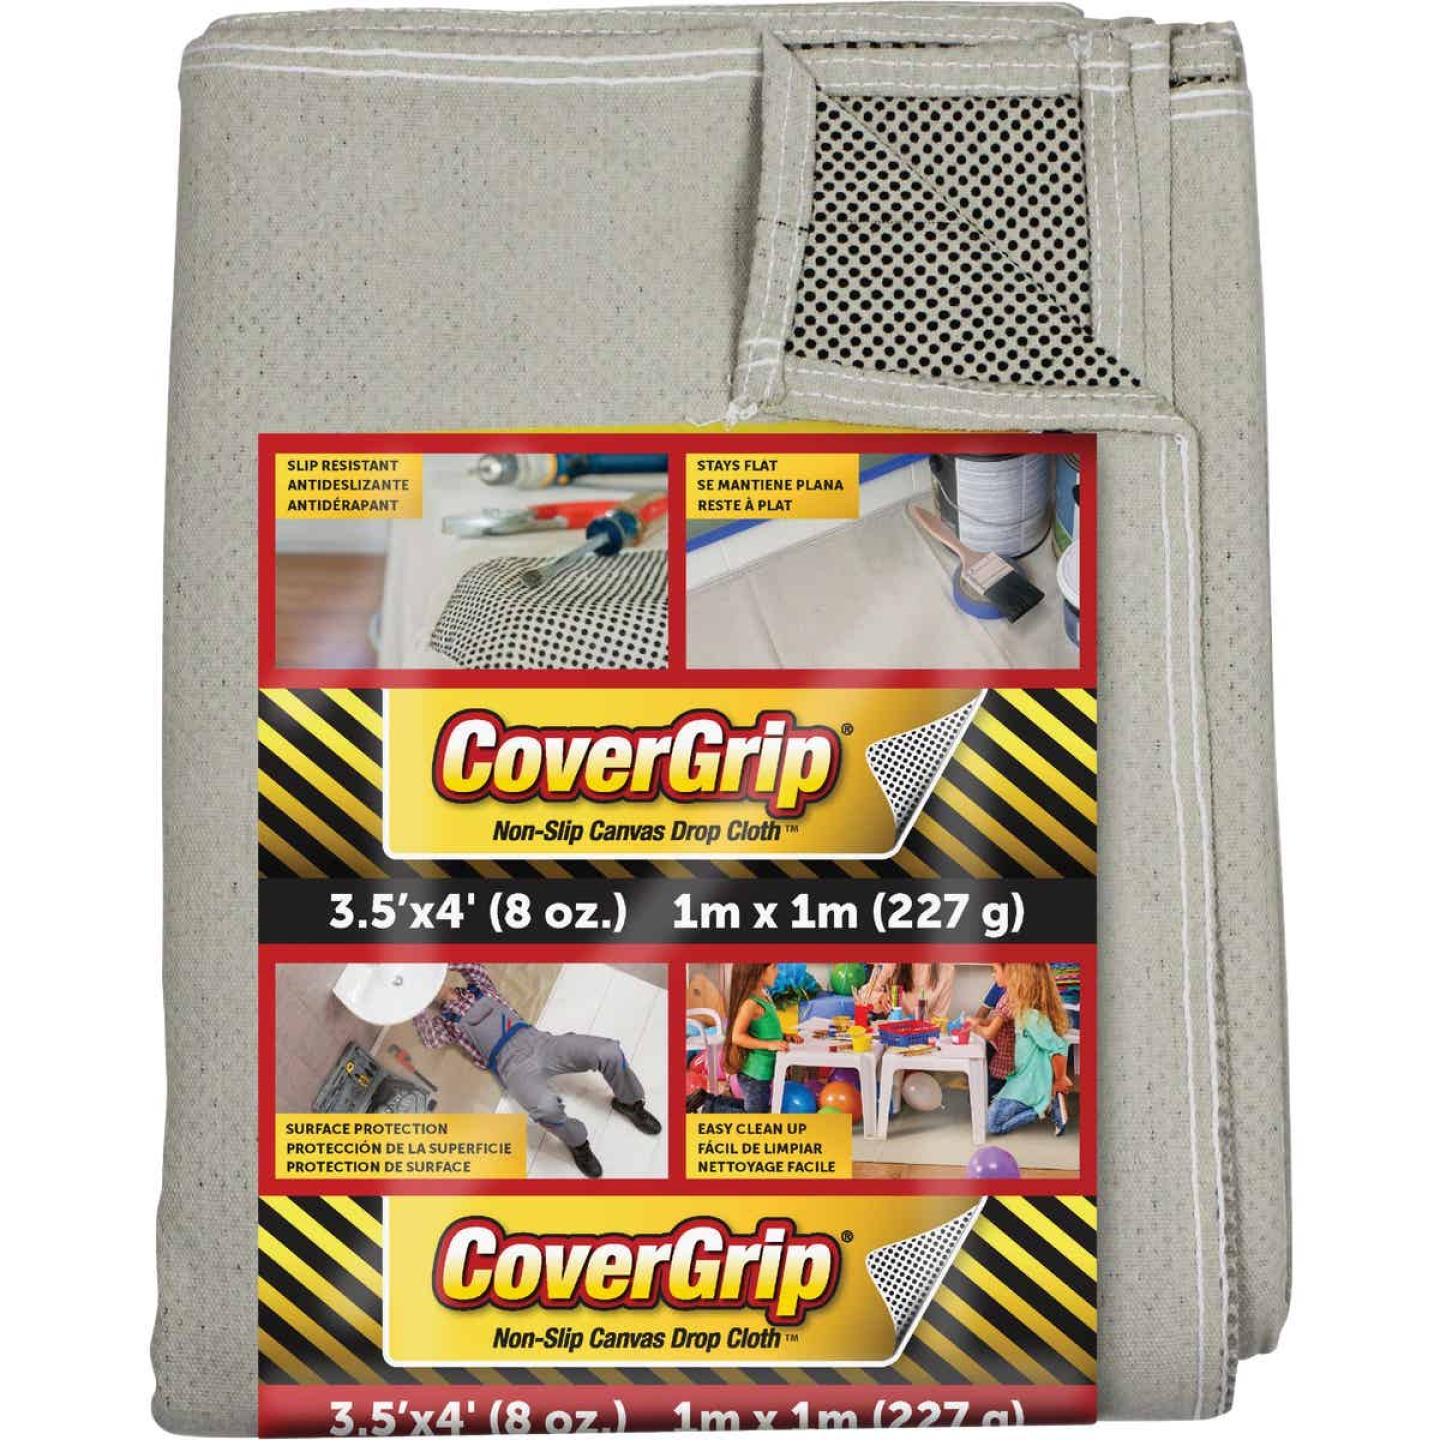 CoverGrip 3.5 Ft. x 4 Ft. 8 Oz. Non-Slip Safety Drop Cloth Image 1